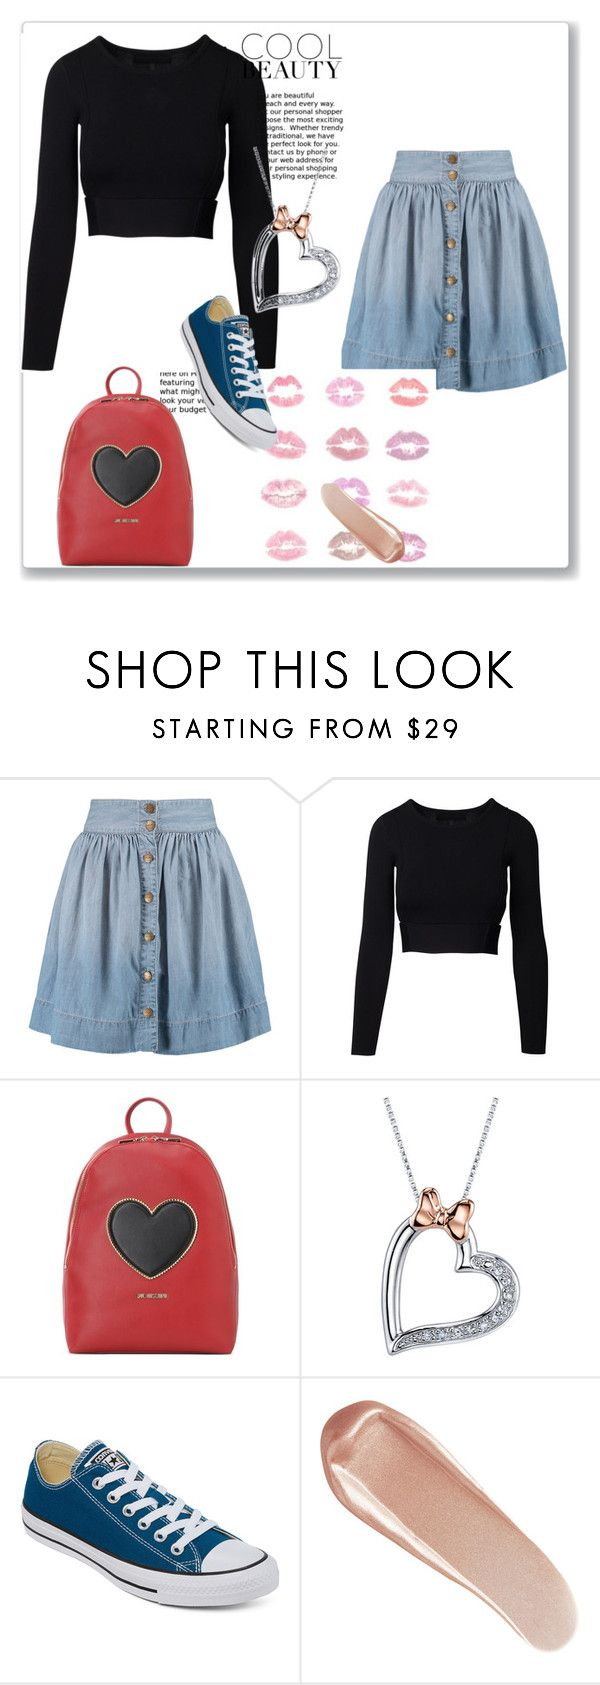 """picture day"" by cj34turtles on Polyvore featuring Current/Elliott, Love Moschino, Disney, Converse, NARS Cosmetics and converseoeswitheverything"